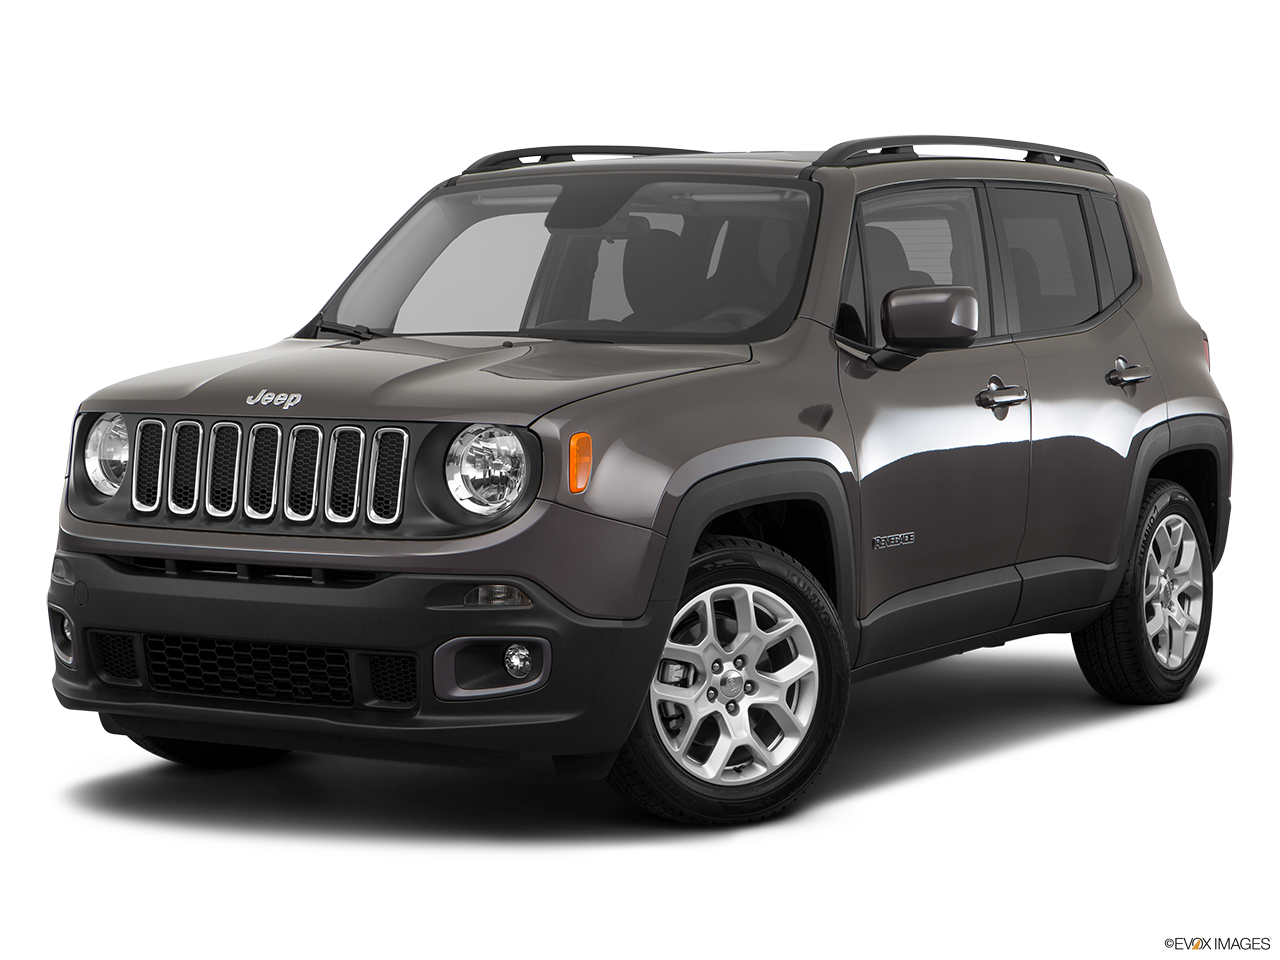 Moss Bros Jeep >> 2016 Jeep Renegade dealer serving Riverside | Moss Bros. Chrysler Jeep Dodge RAM